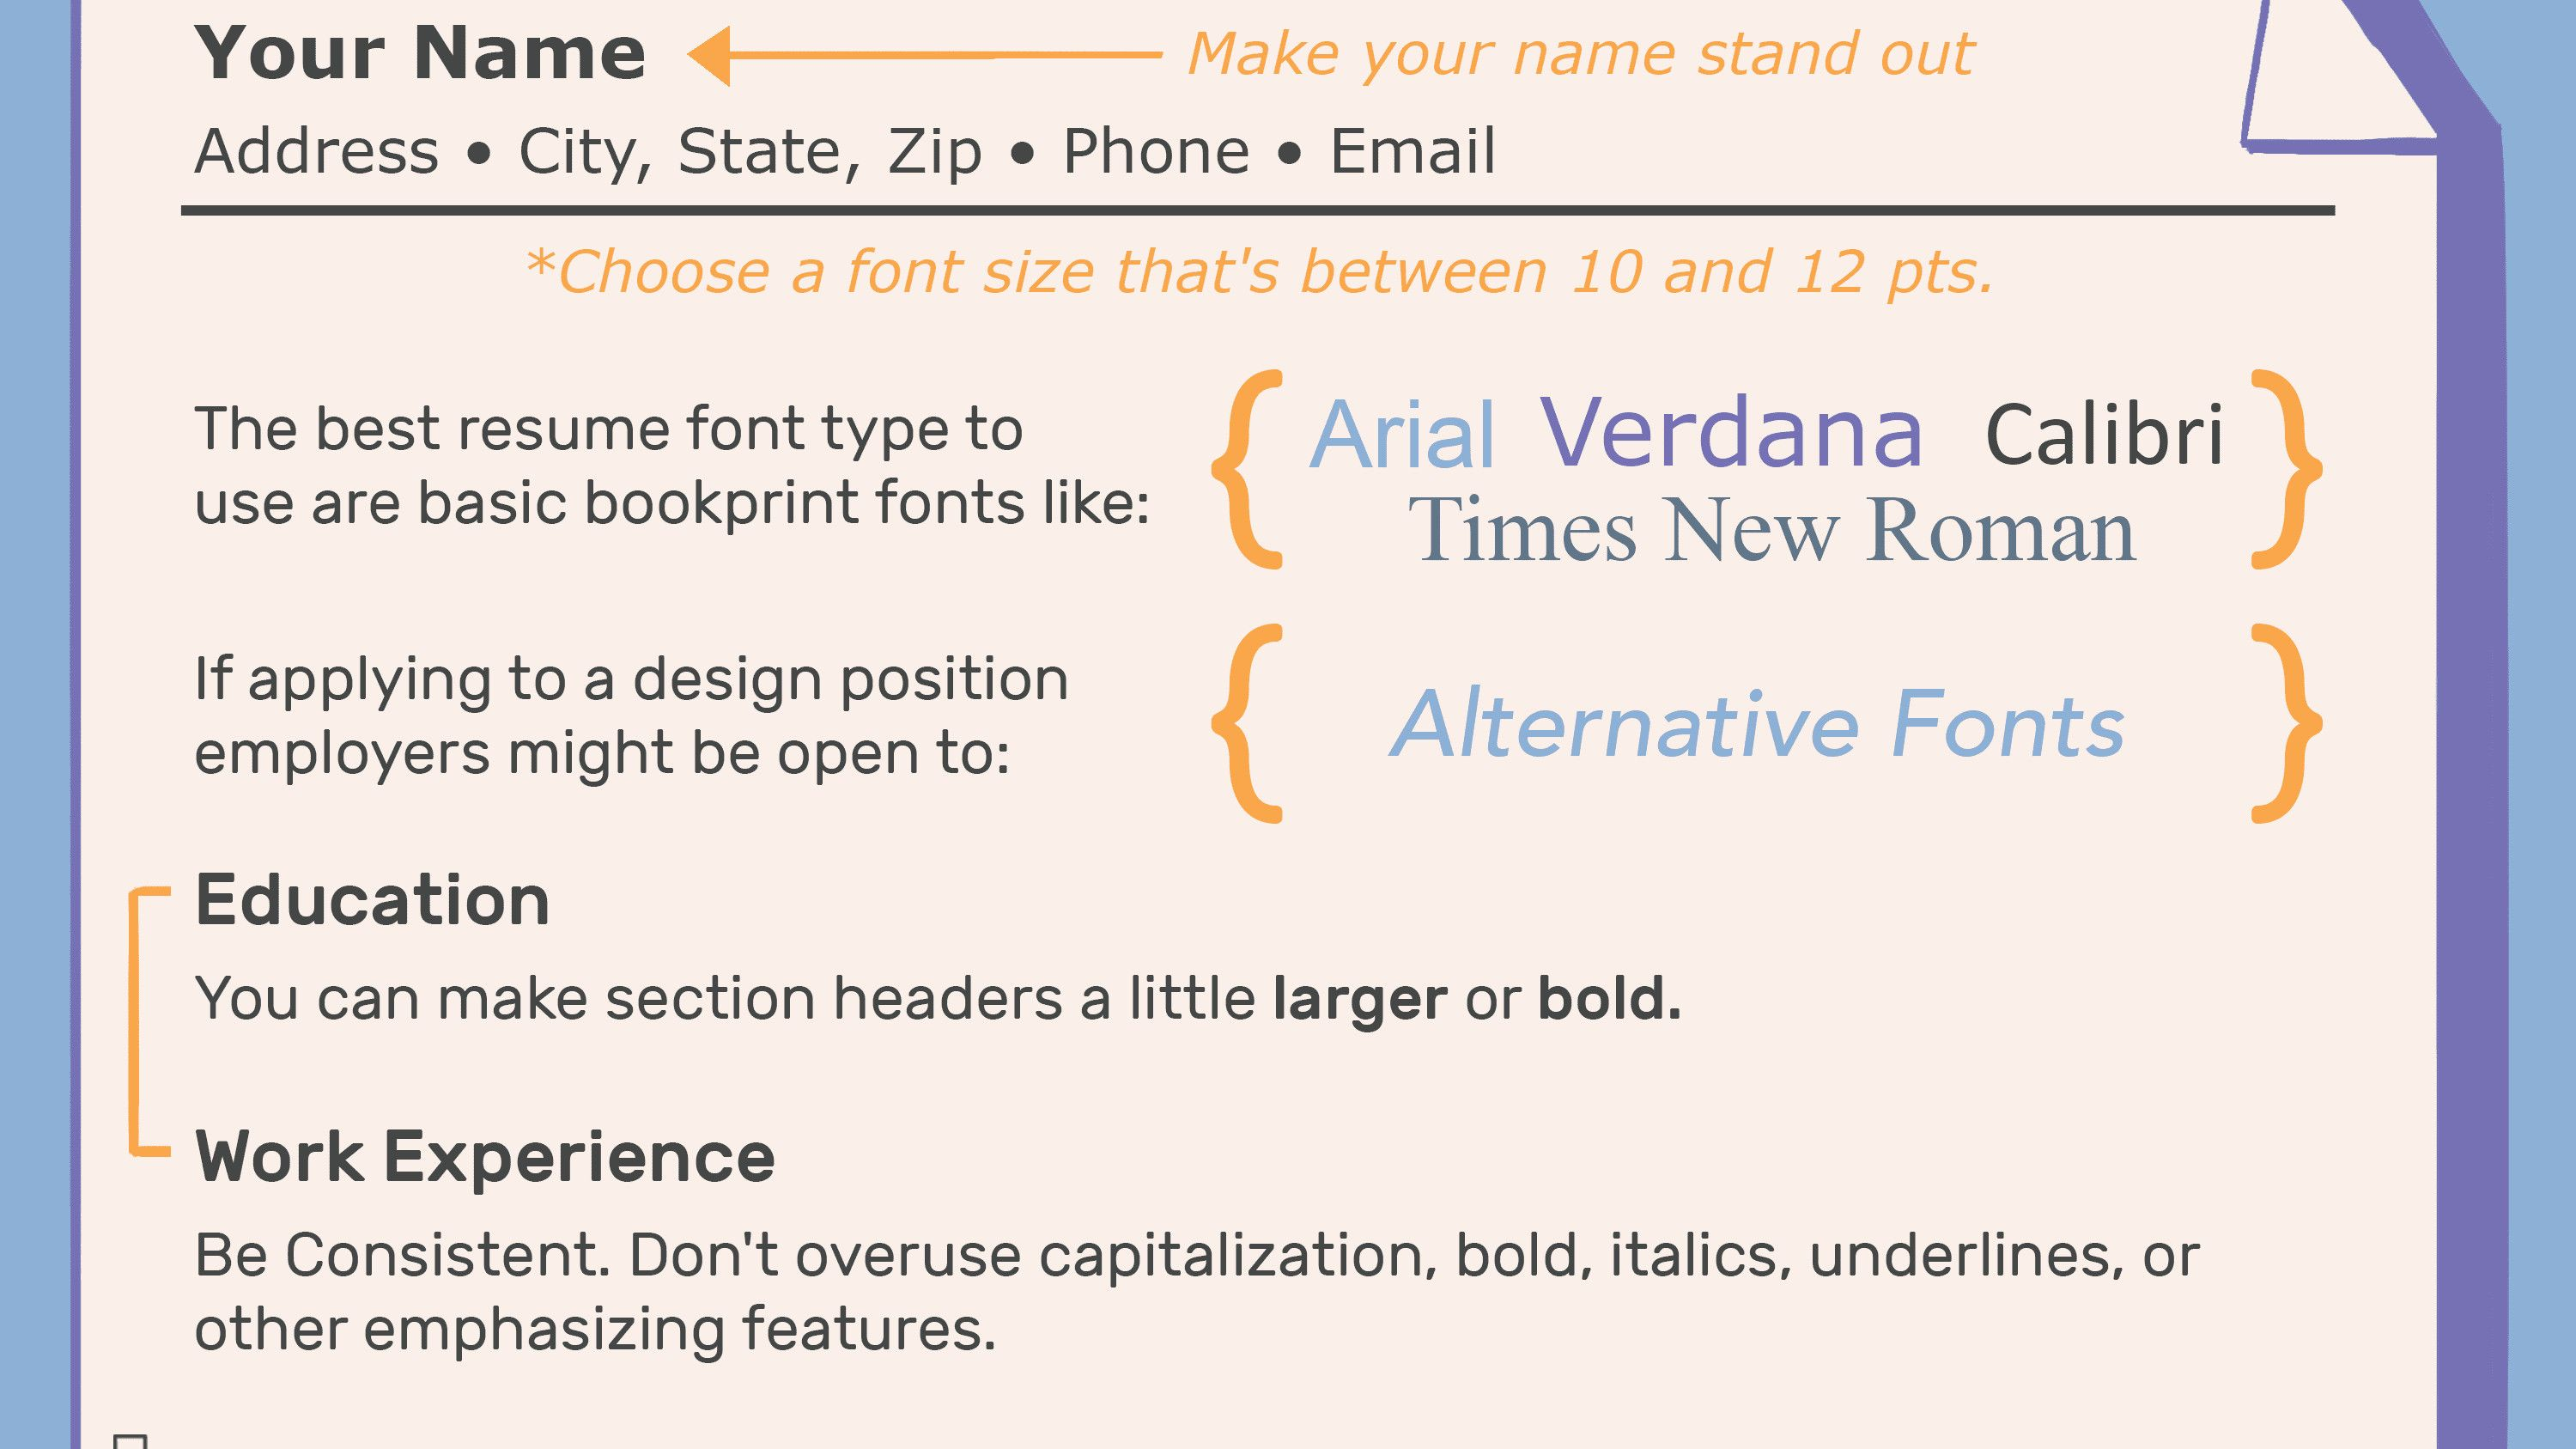 What Kind Of Paper Should I Print My Resume On New The Best Font Size And Type For Resumes Resume Good Resume Examples Best Resume Template